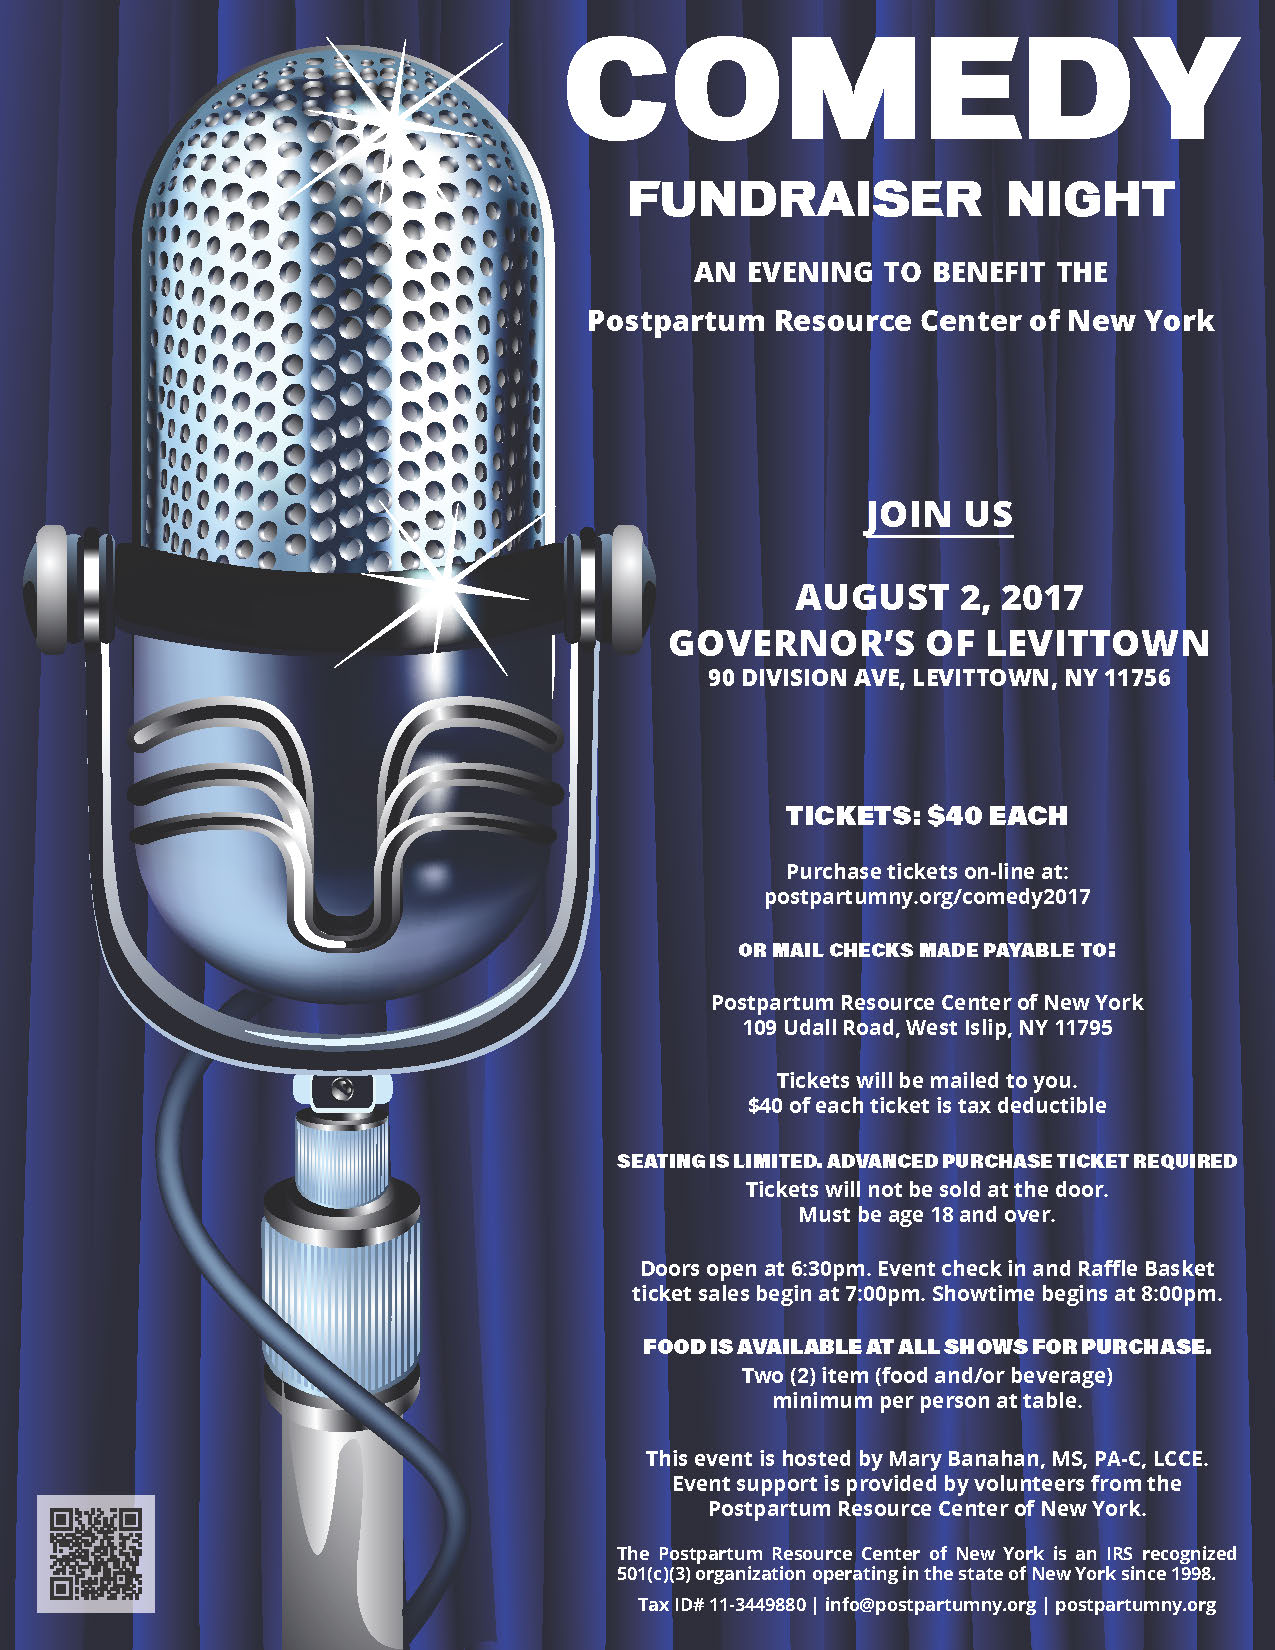 Comedy Fundraiser Night flyer 2017.